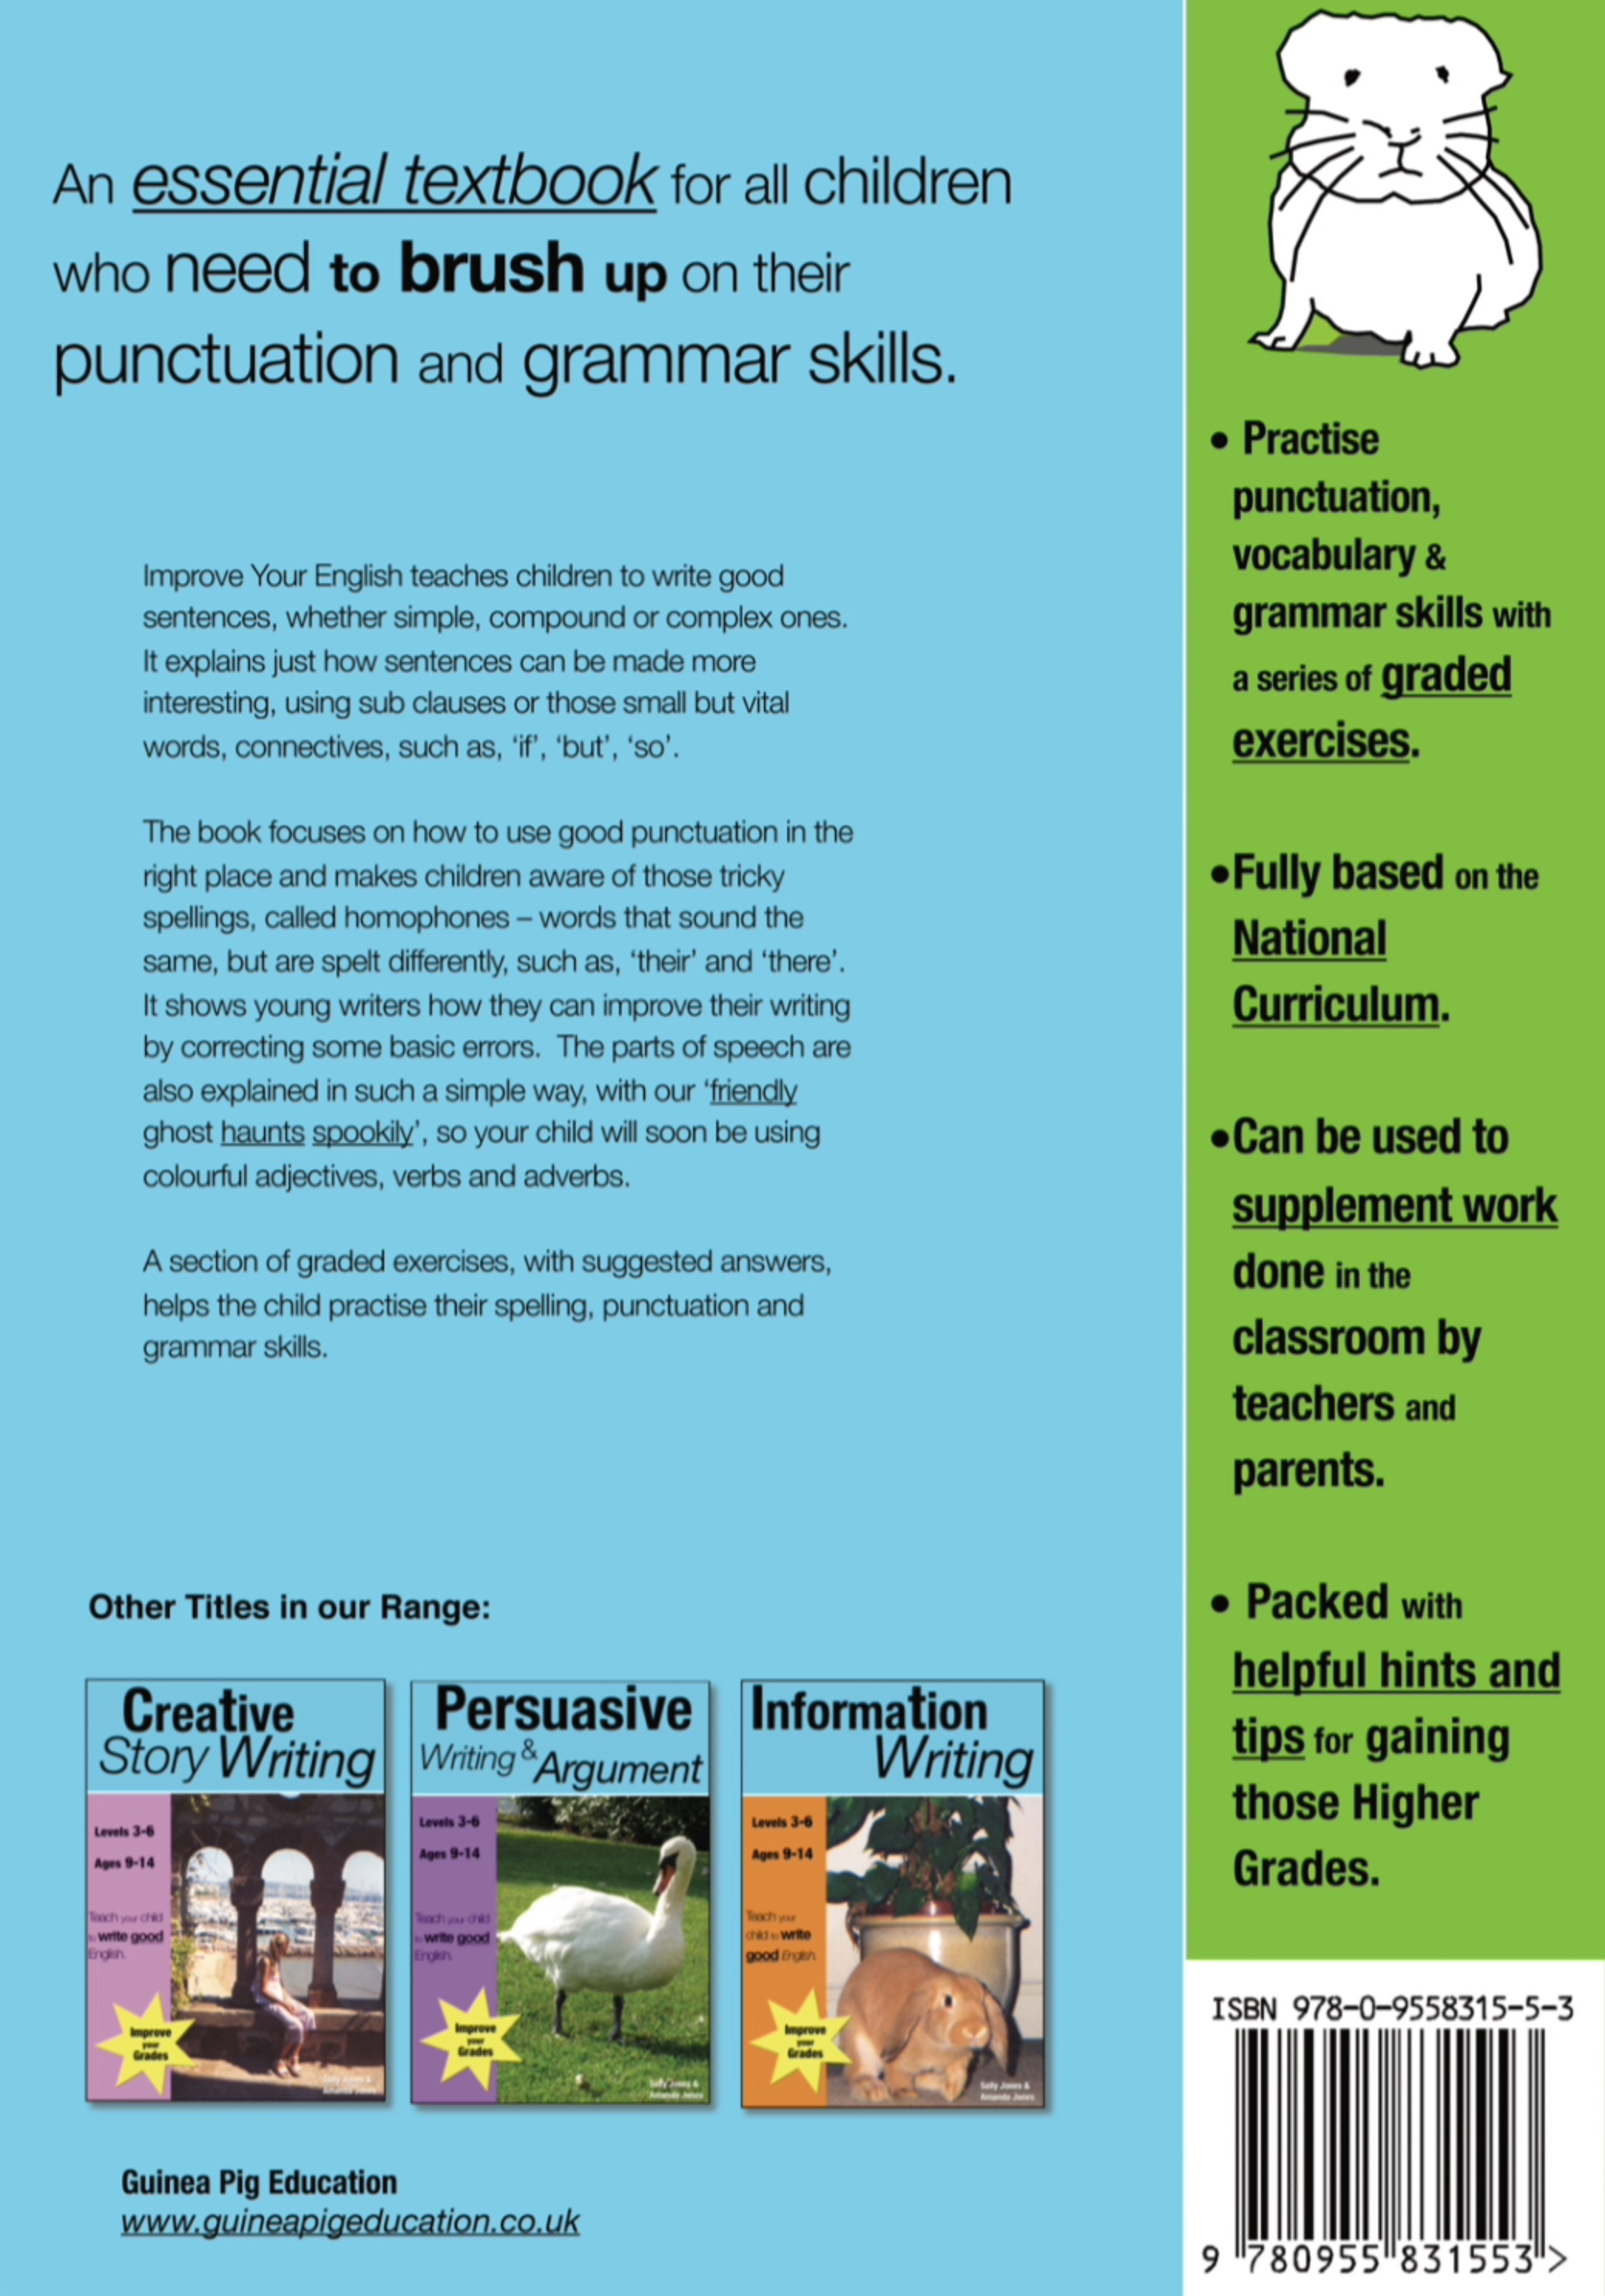 Improve Your English (ages 8-14 years) Teach Your Child Good Punctuation & Grammar Digital Download